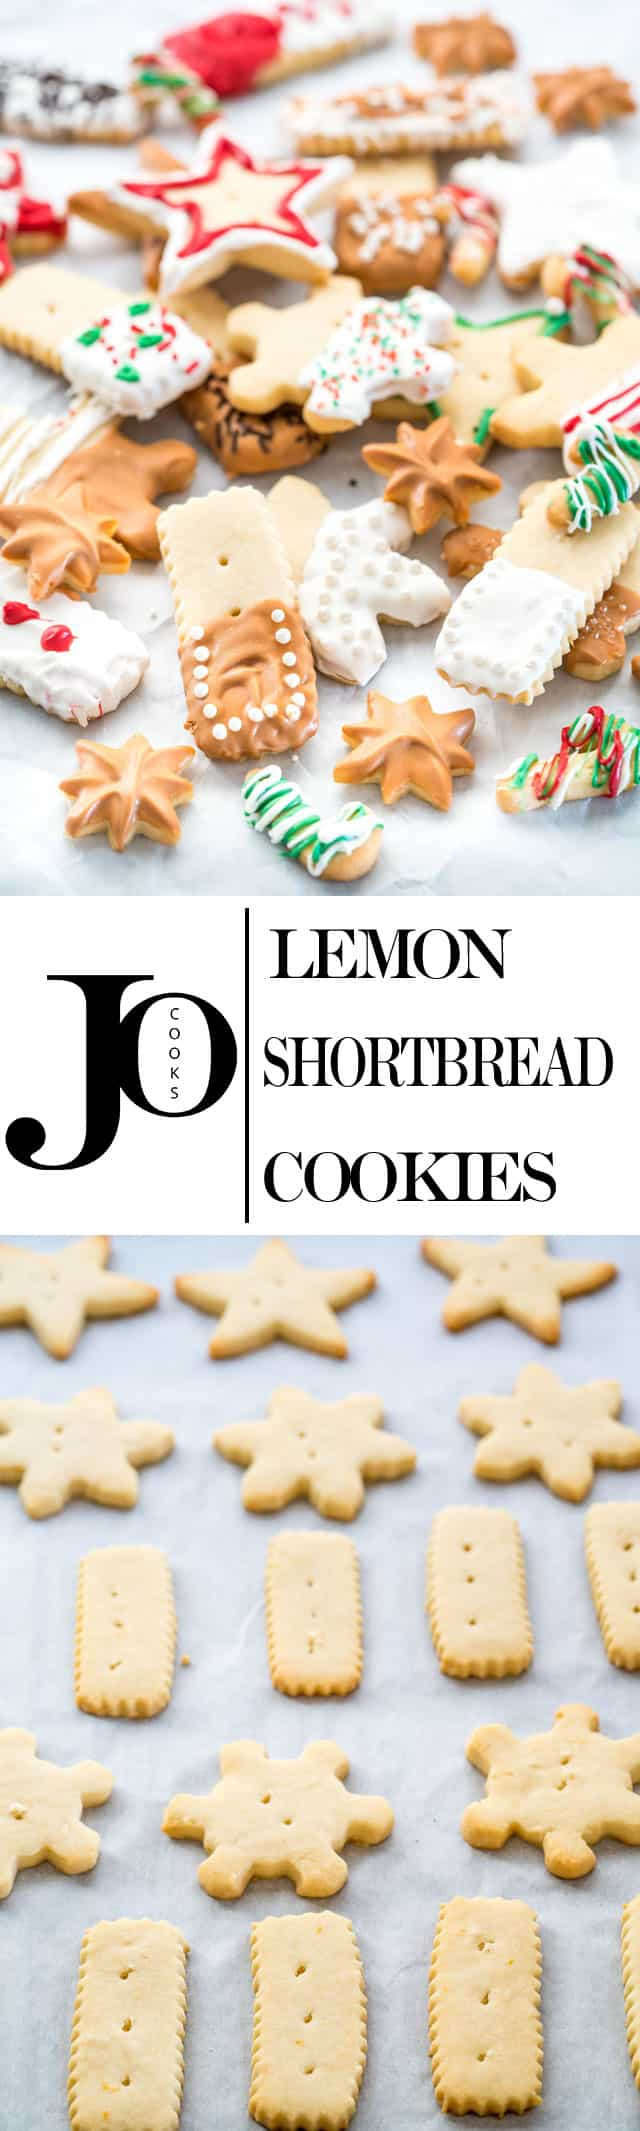 Lemon Shortbread Cookies - Classic shortbread with a lemony twist. Using only 4 ingredients and festive decorations, fill your house with the wonderful aroma of Christmas justin time for the holidays. www.jocooks.com #shortbread